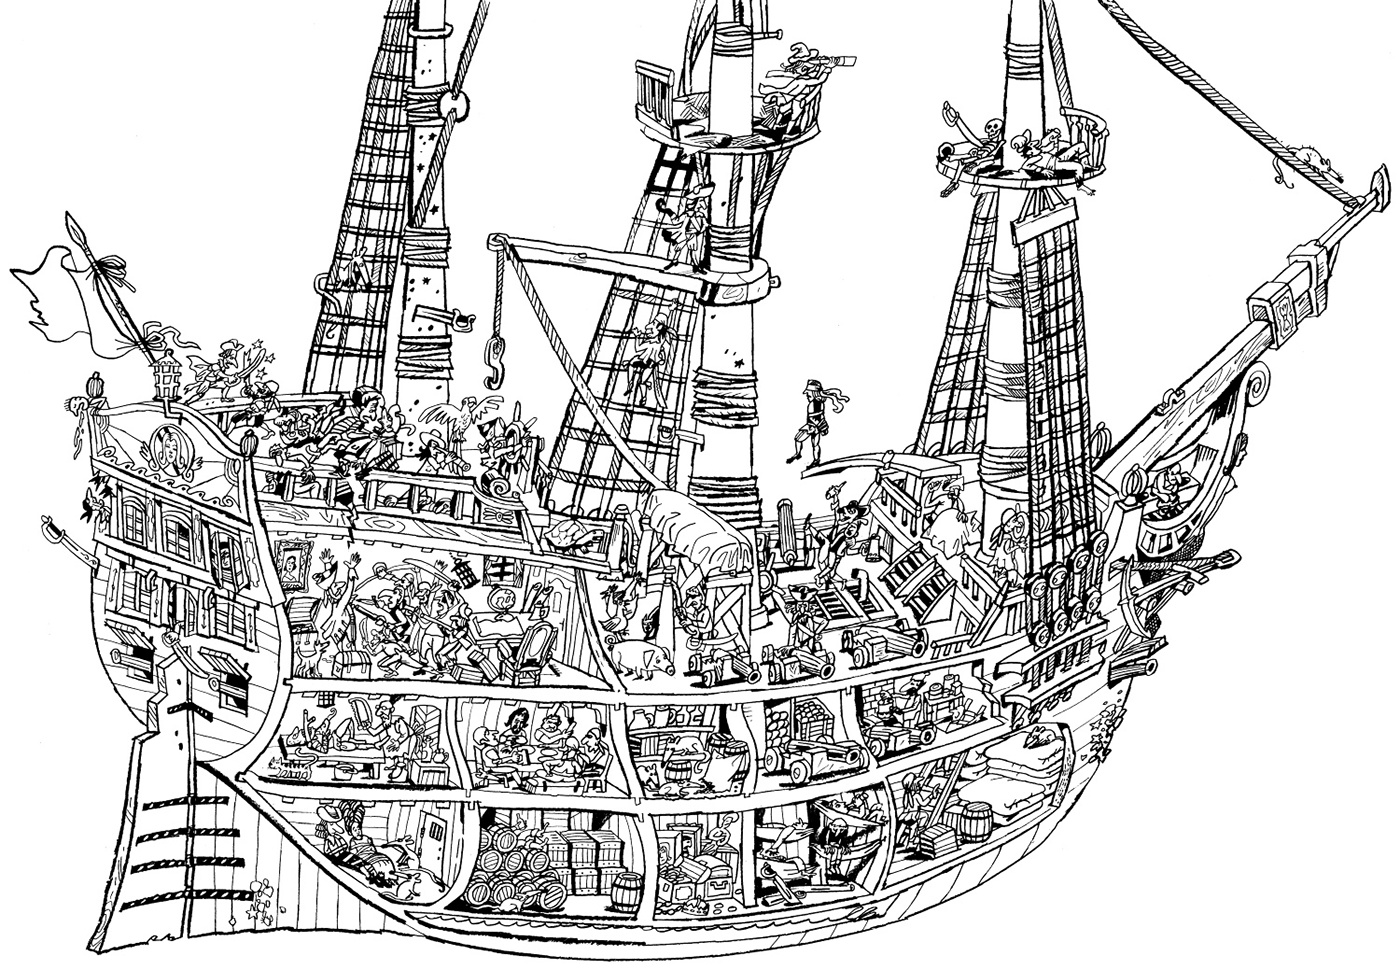 old pirate ship drawing i really like this one minus the castle should be a sunset drawing pirate ship old